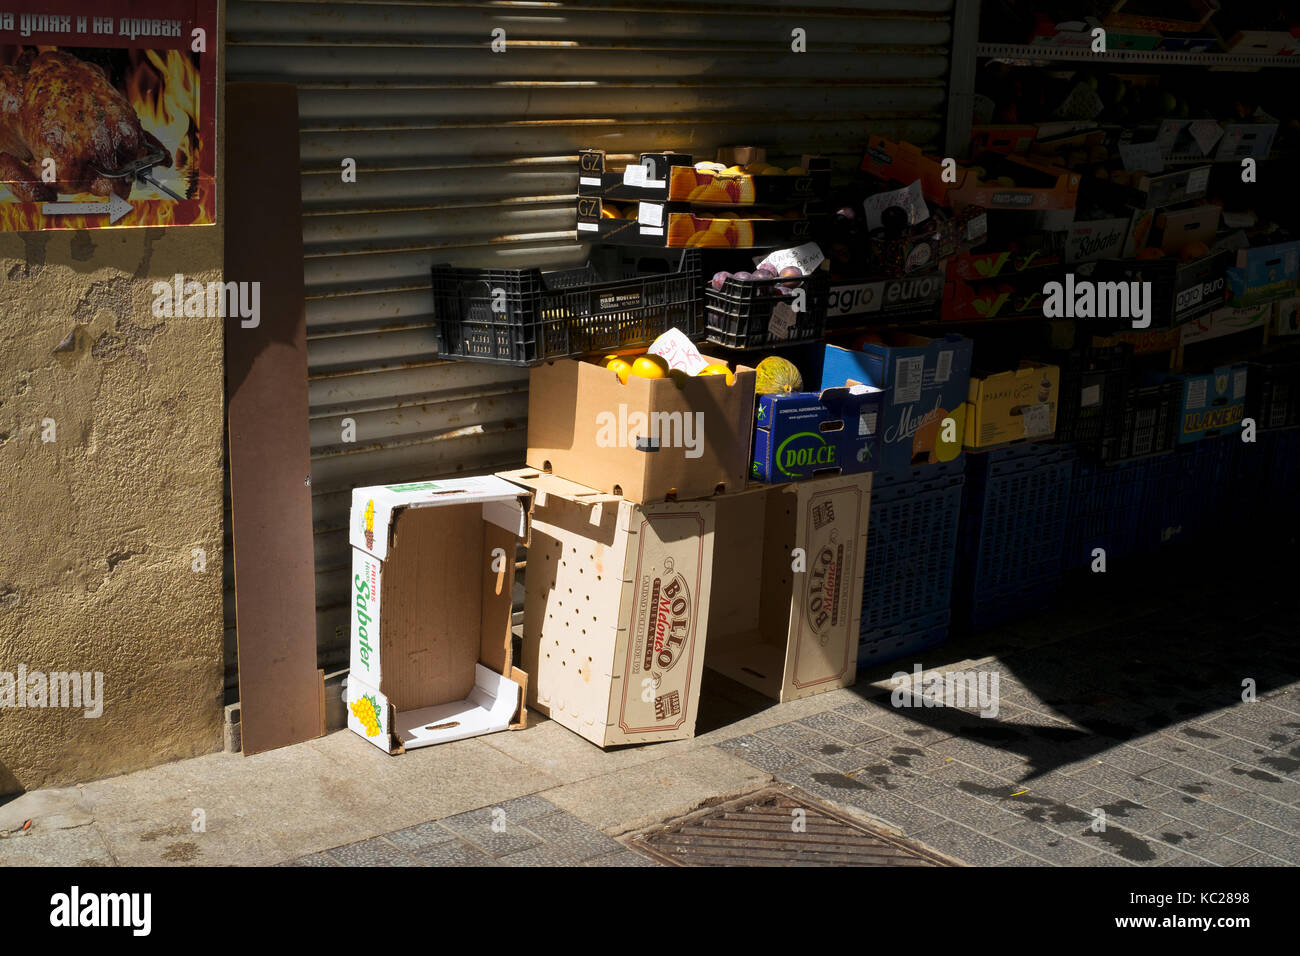 Fruit and vegetables stacked up in boxes and pallets in a side street of Lloret de Mar, Spain - Stock Image